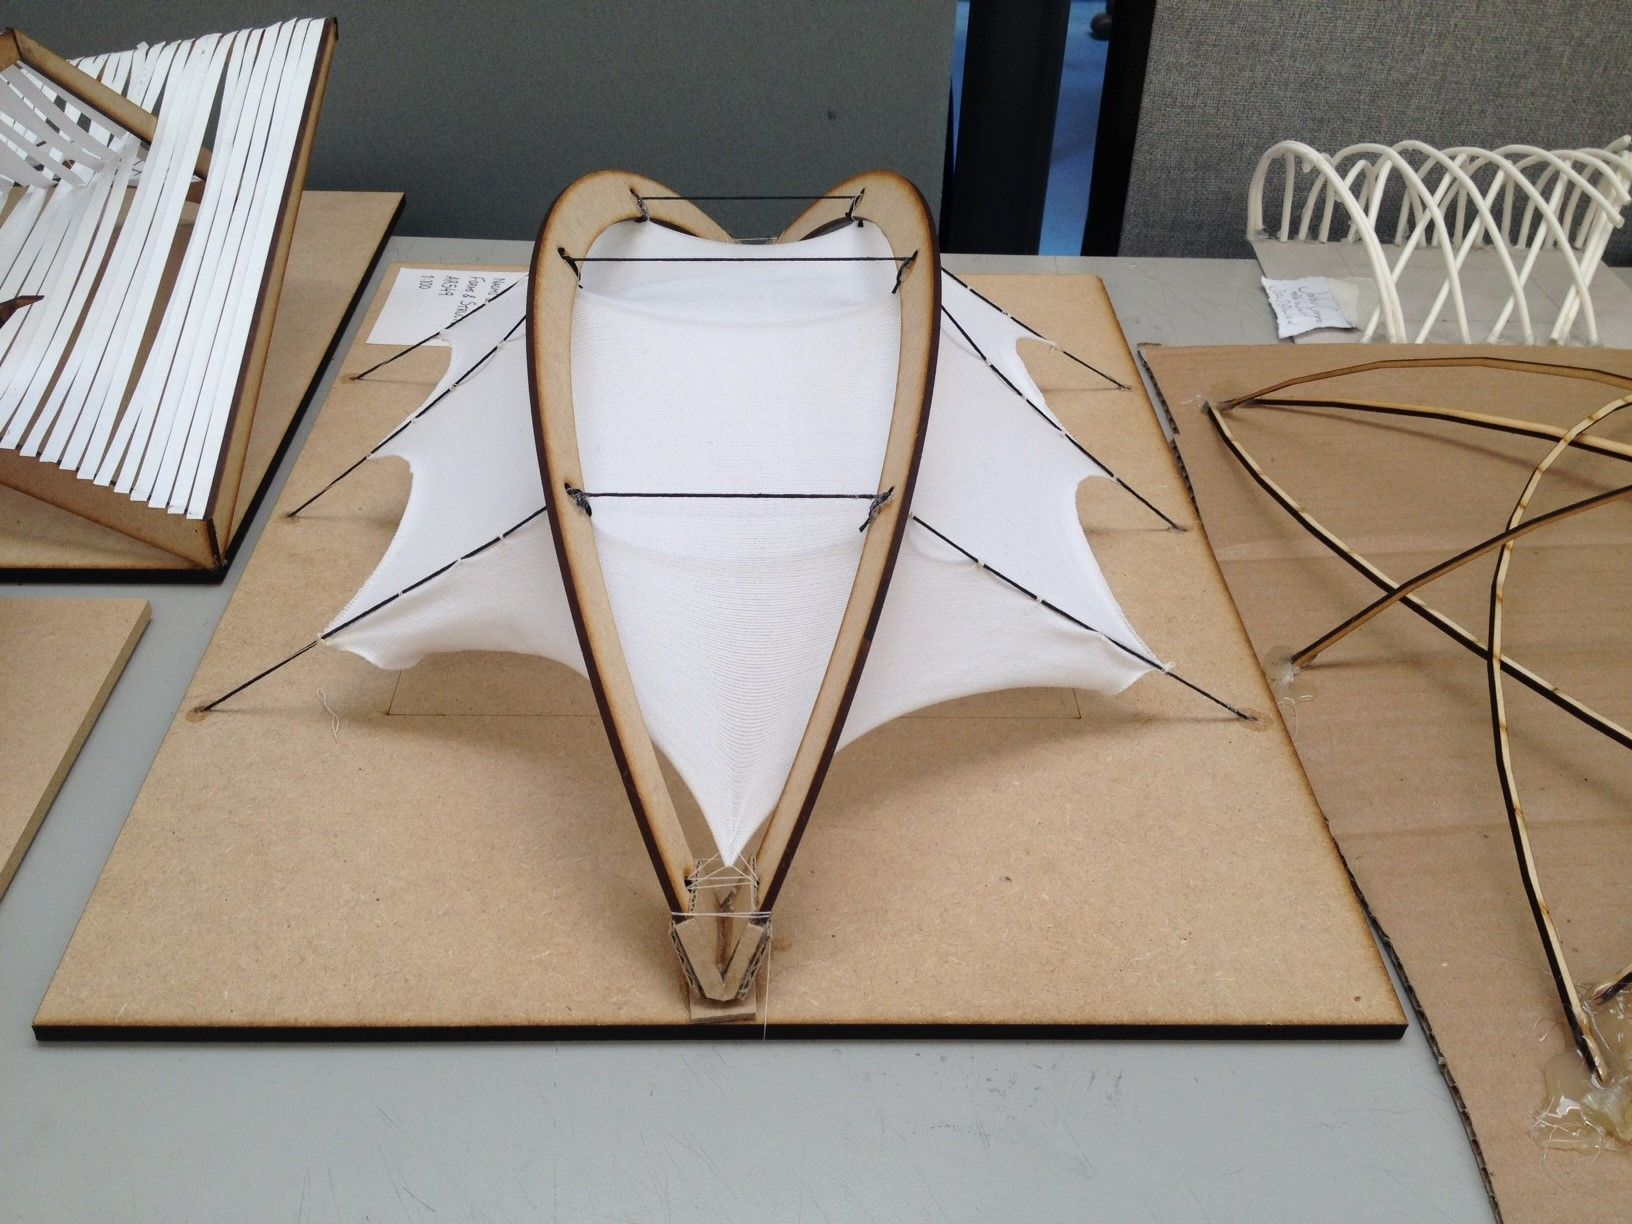 Related Image Roof Architecture Concept Architecture Architecture Model